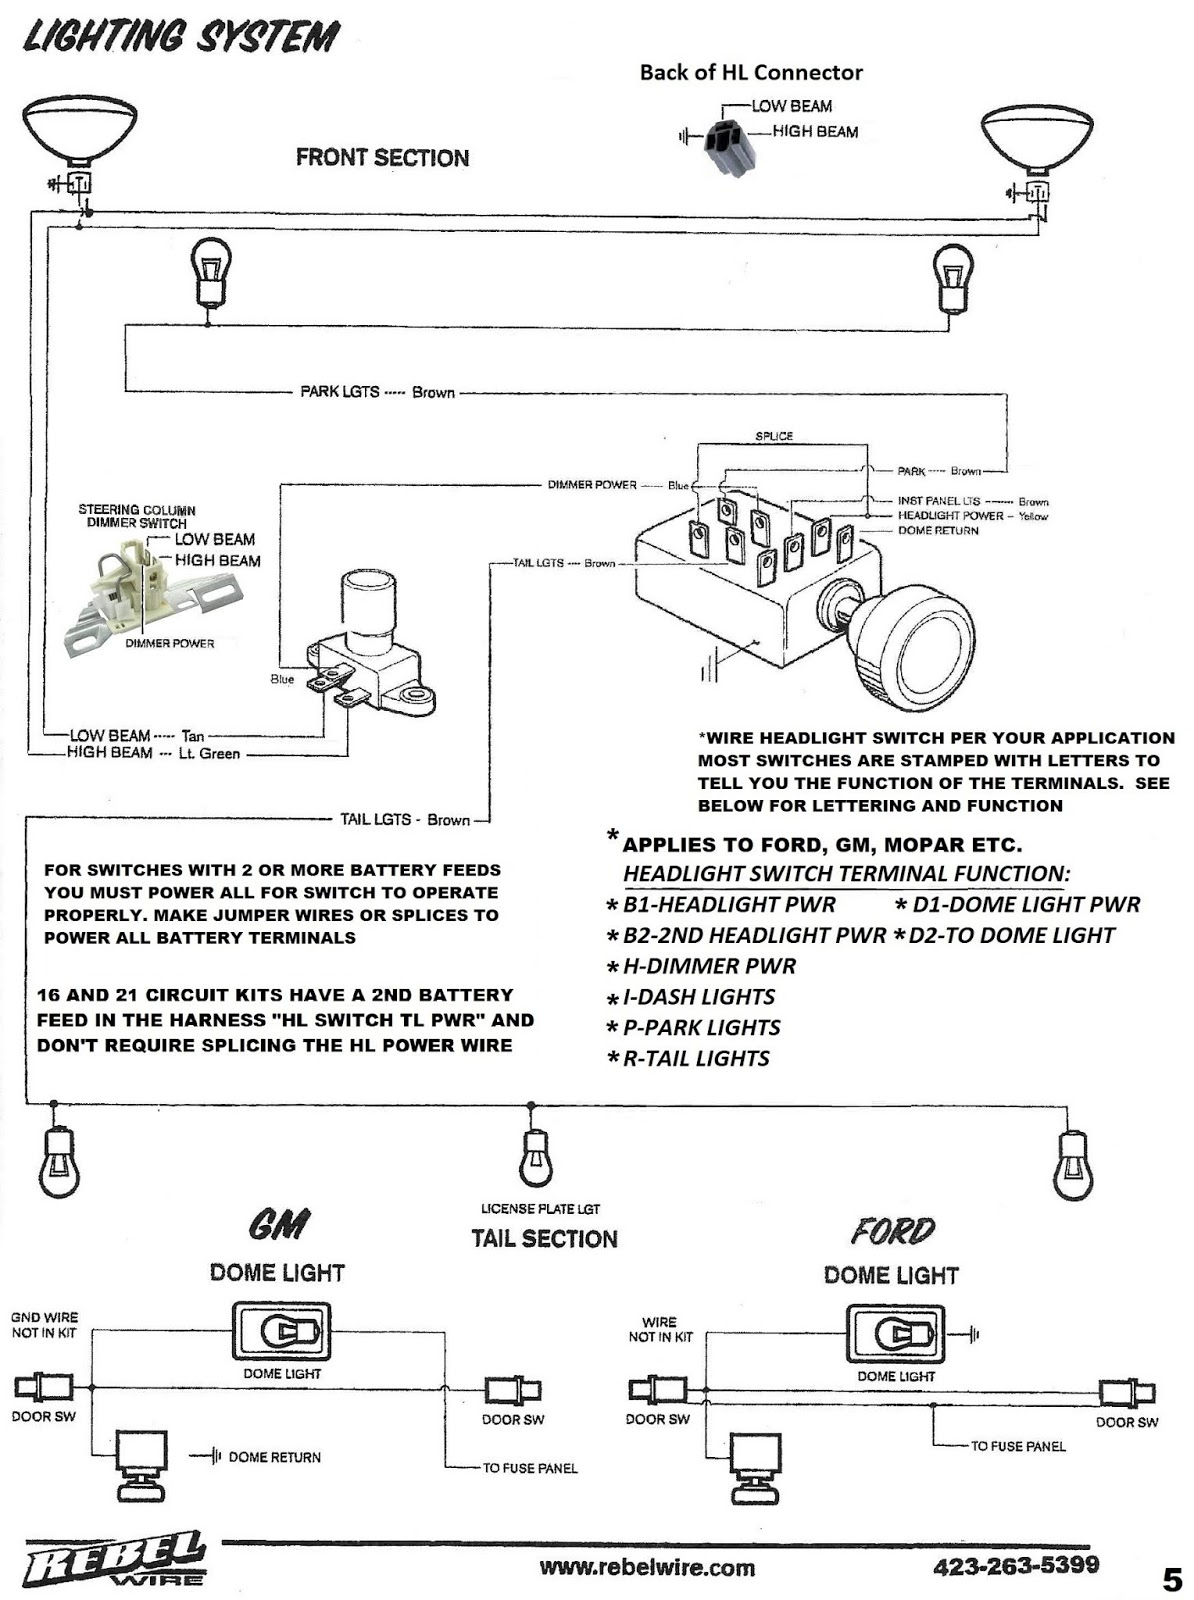 hight resolution of street rod wiring diagram vp instrument cluster help asapl3vndashwiringjpg wiring diagramdome light wiring diagram together with chevy dome light wiring